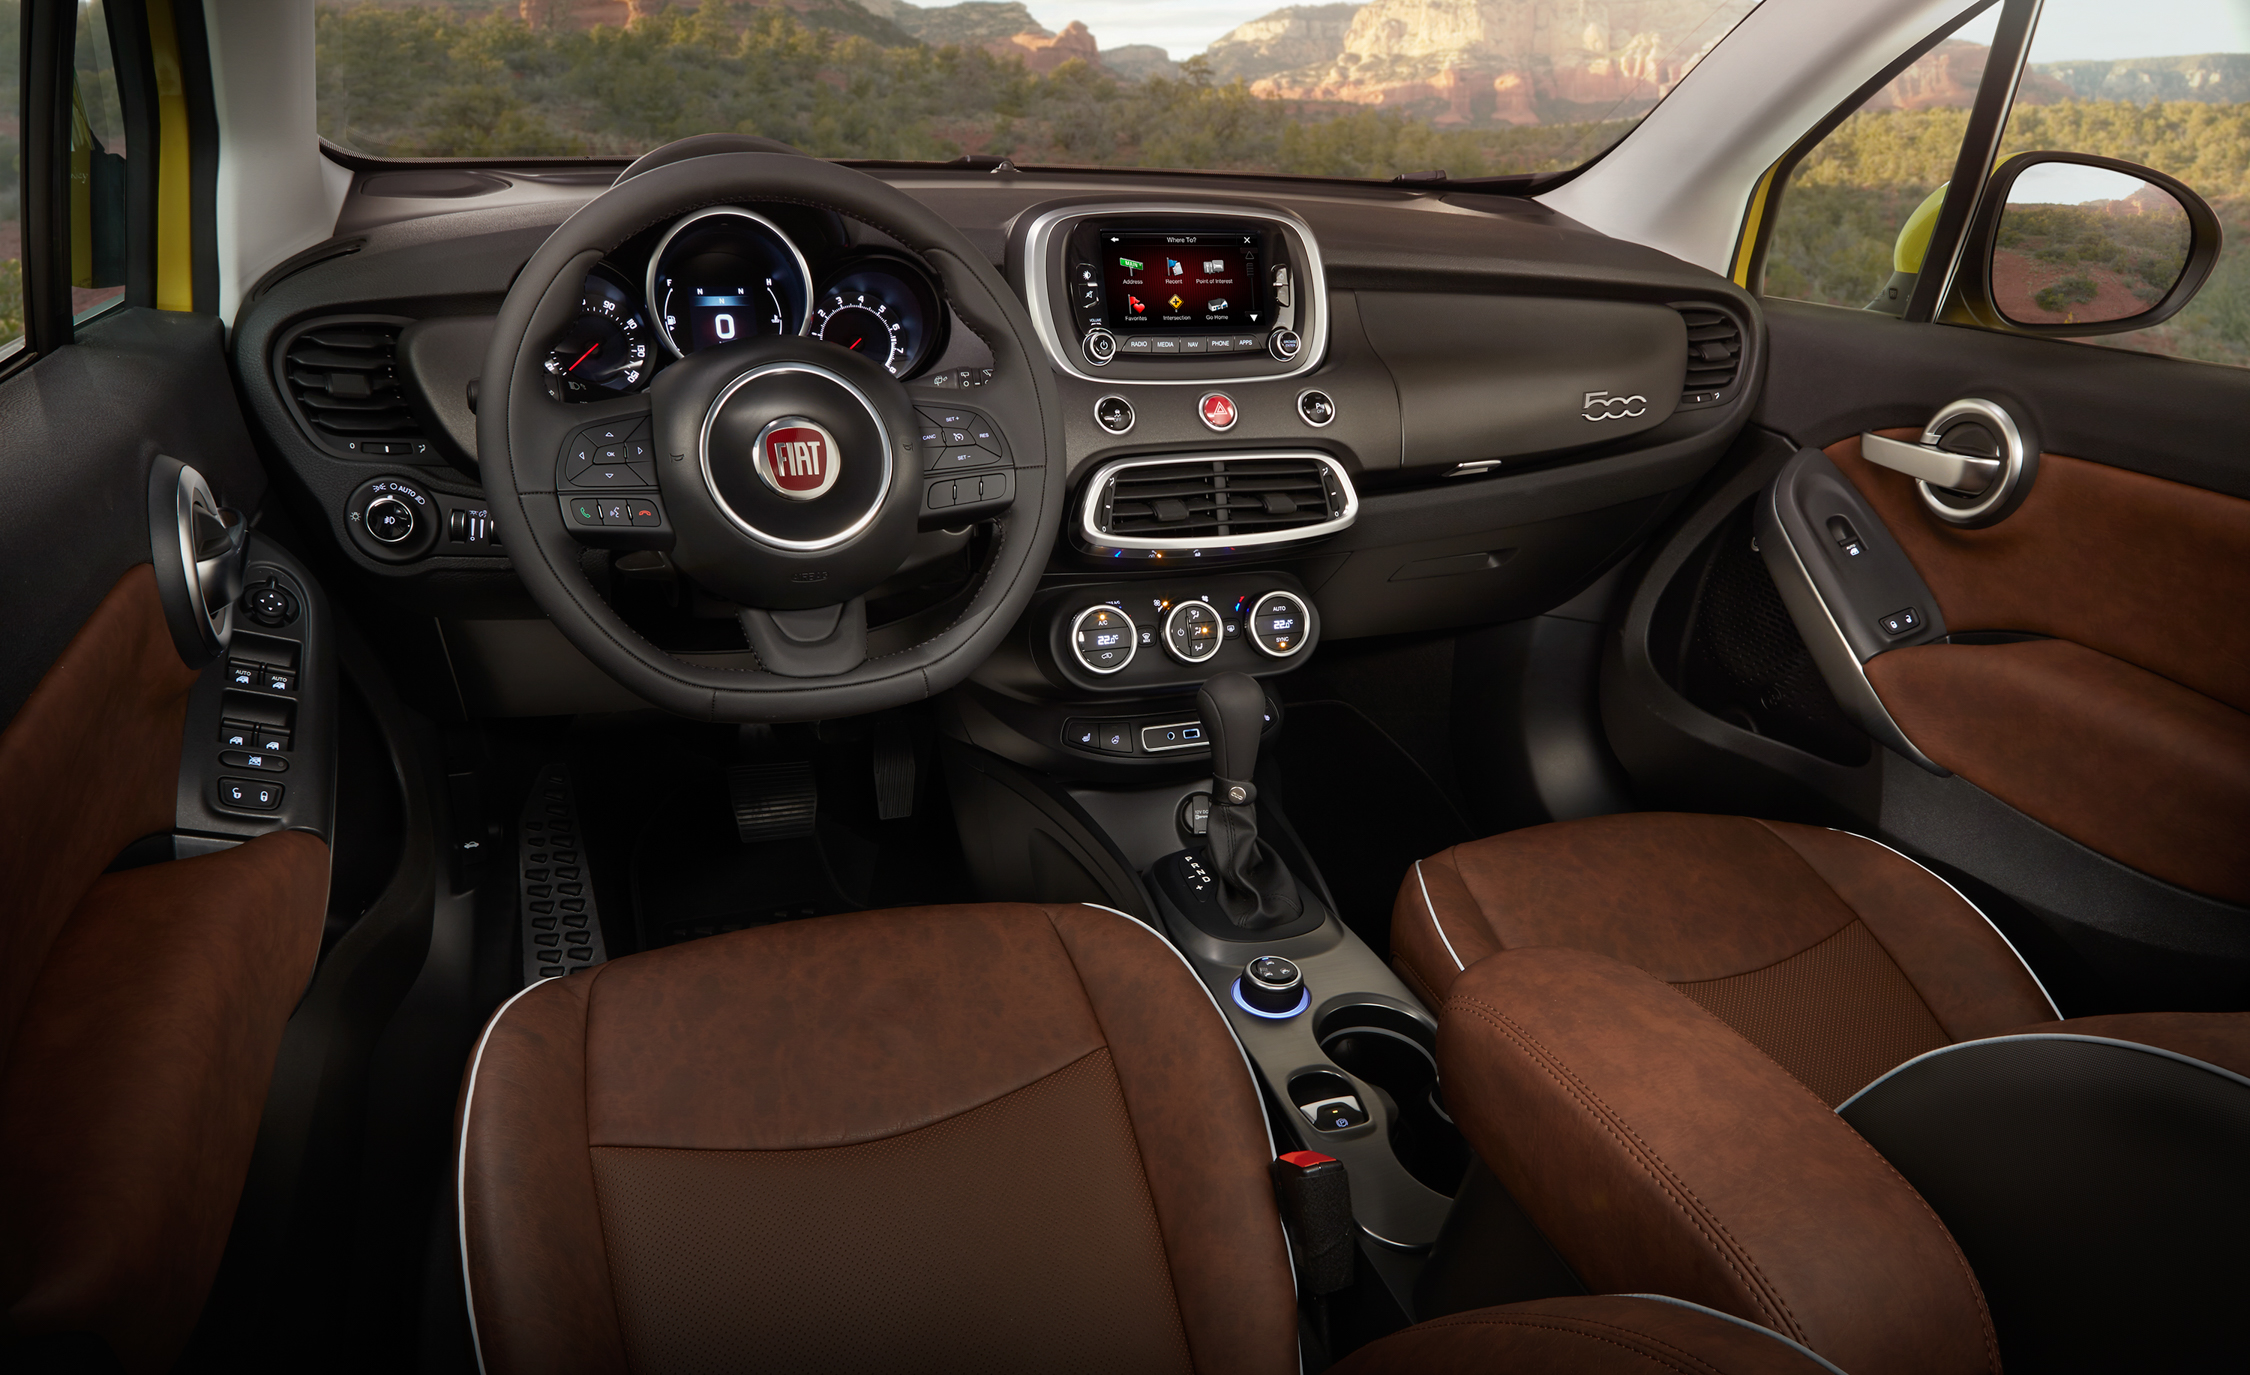 2016 Fiat 500X Trekking Plus (Photo 58 of 66)